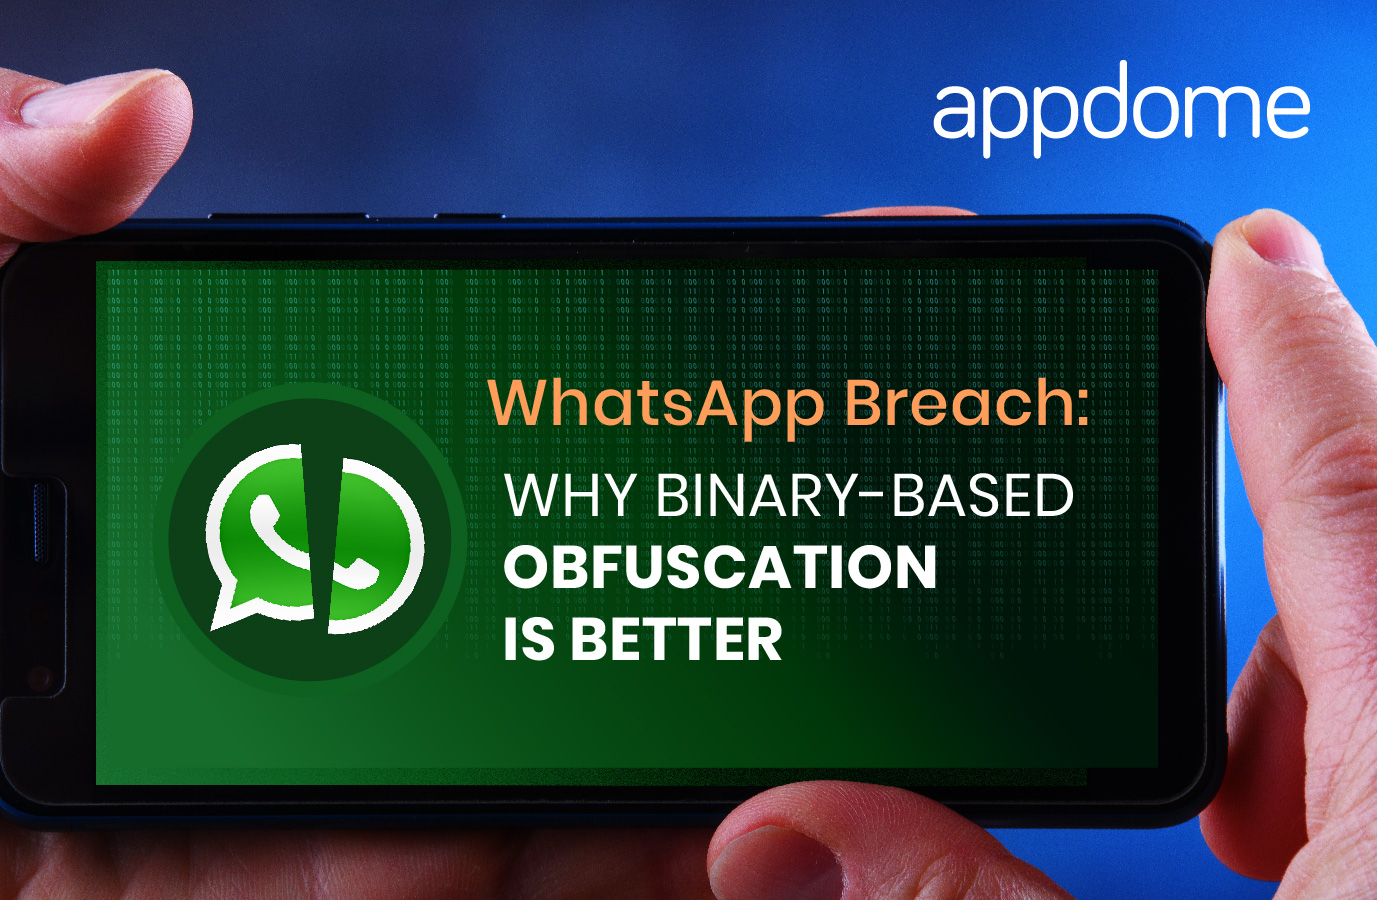 WhatsApp Breach - Why Binary-Based Obfuscation is Better